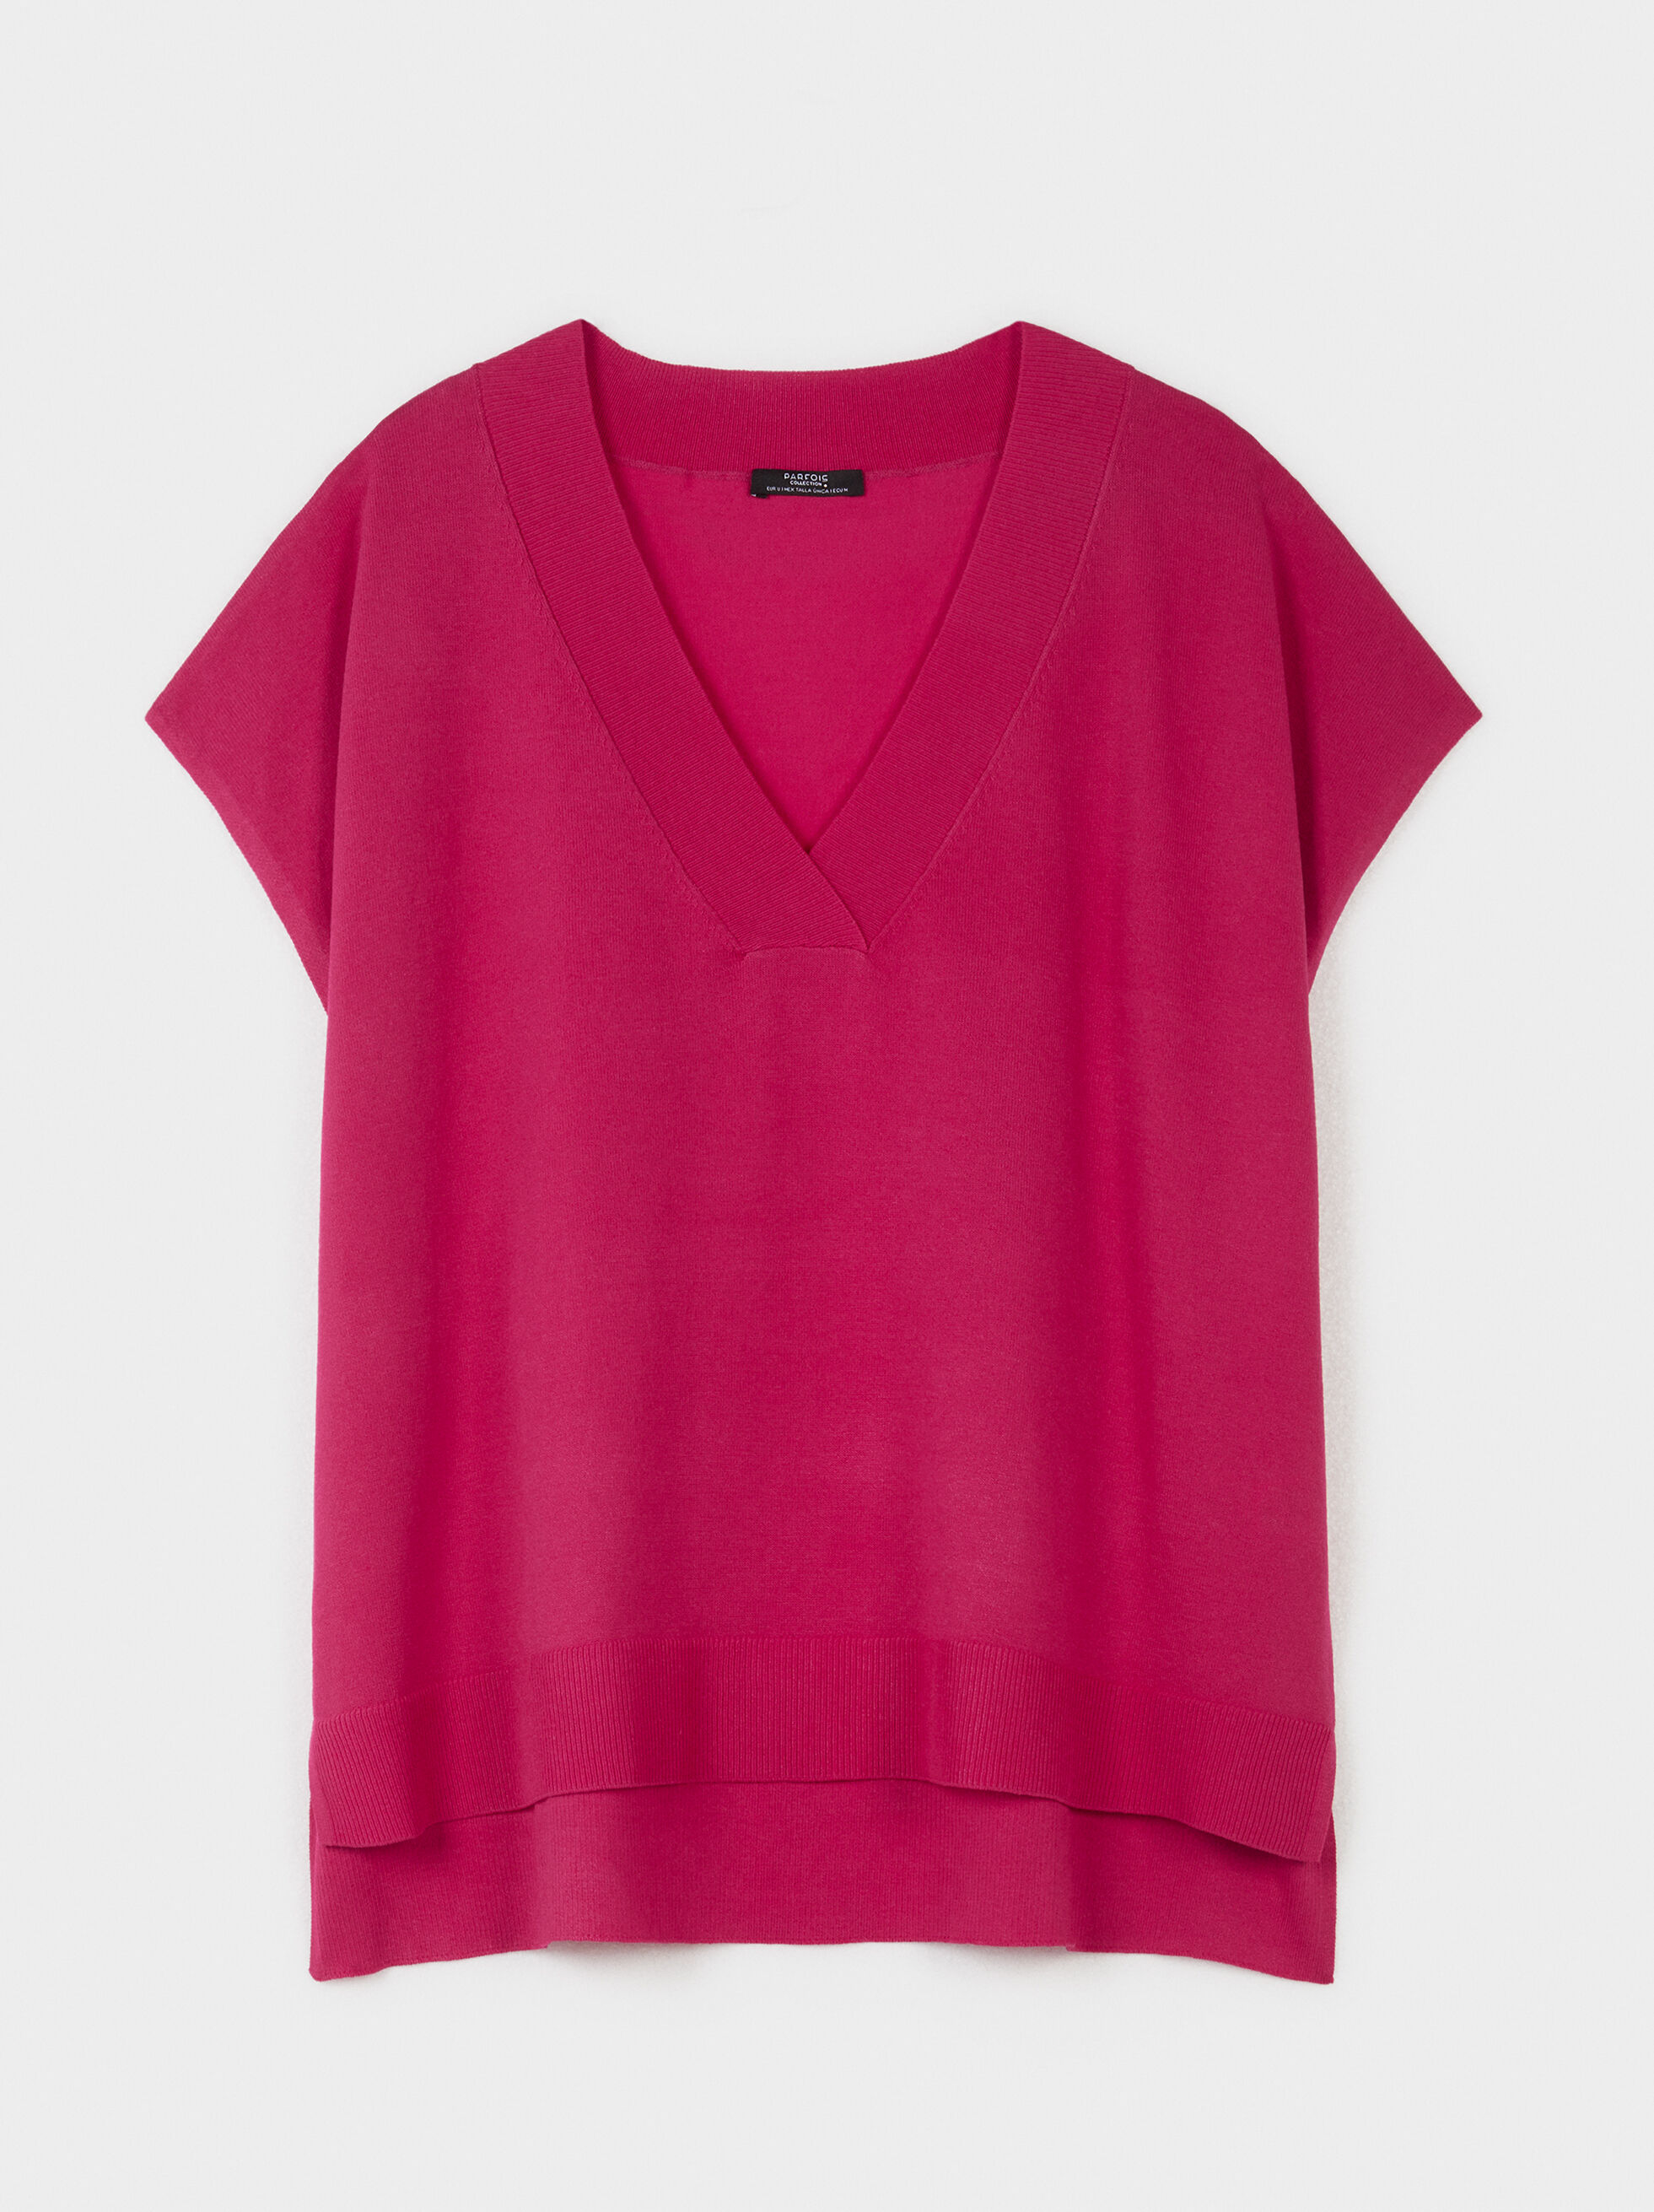 V-Neck Sweater, Pink, hi-res